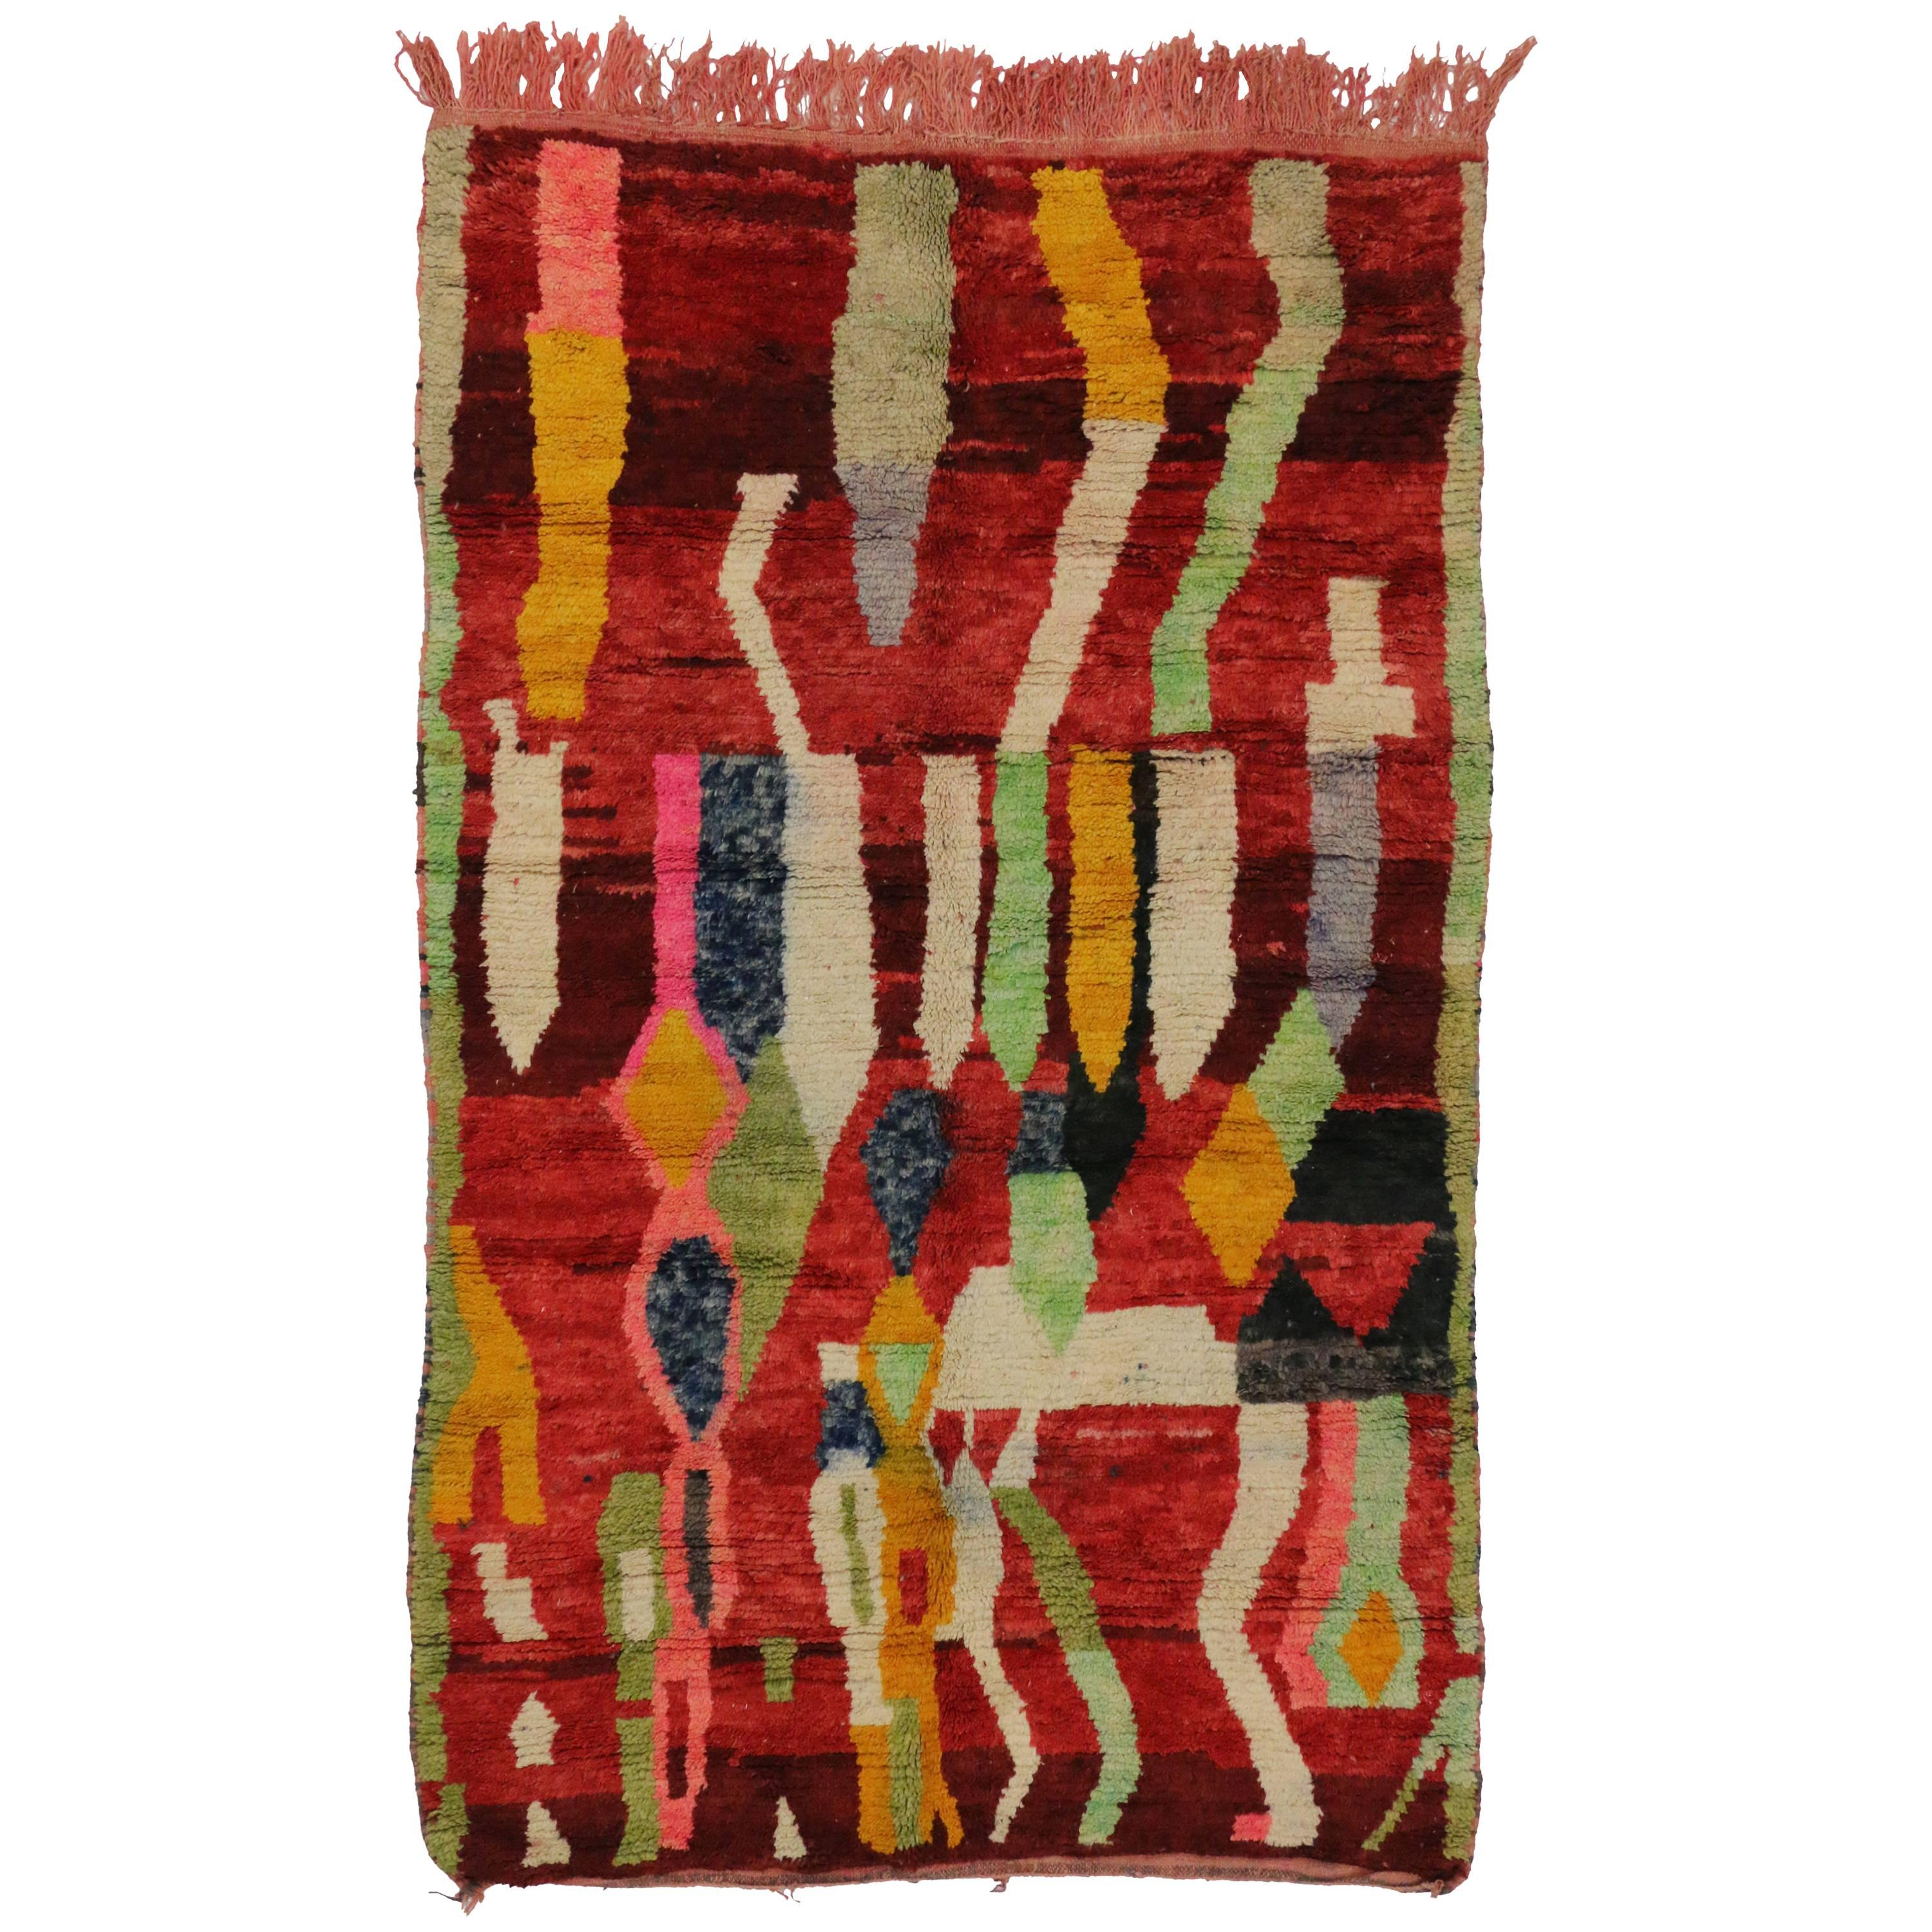 Contemporary Berber Colorful Moroccan Rehamna Rug with Postmodern Bauhaus Style